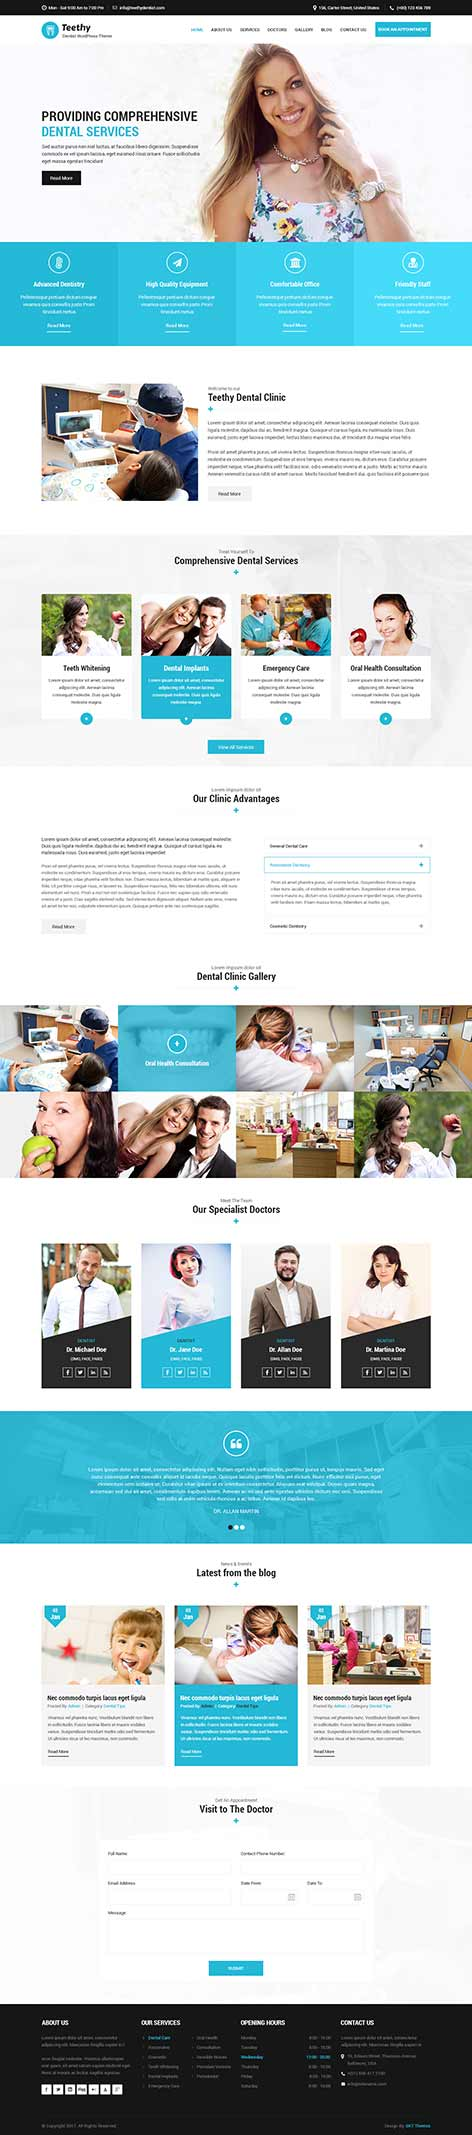 medical wordpress theme - Teethy